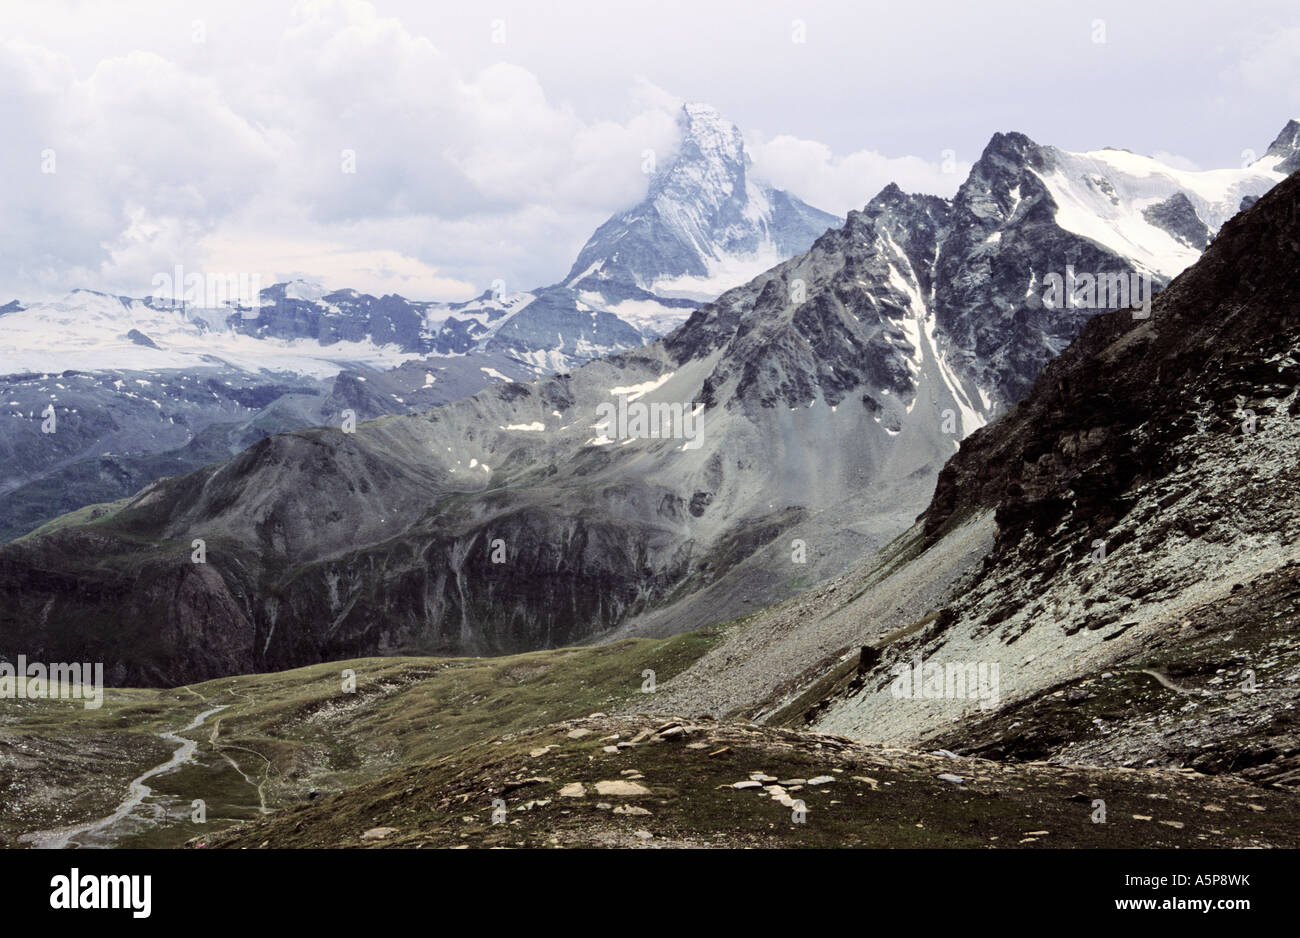 Gabelhorn and Matterhorn view from Trift - Stock Image